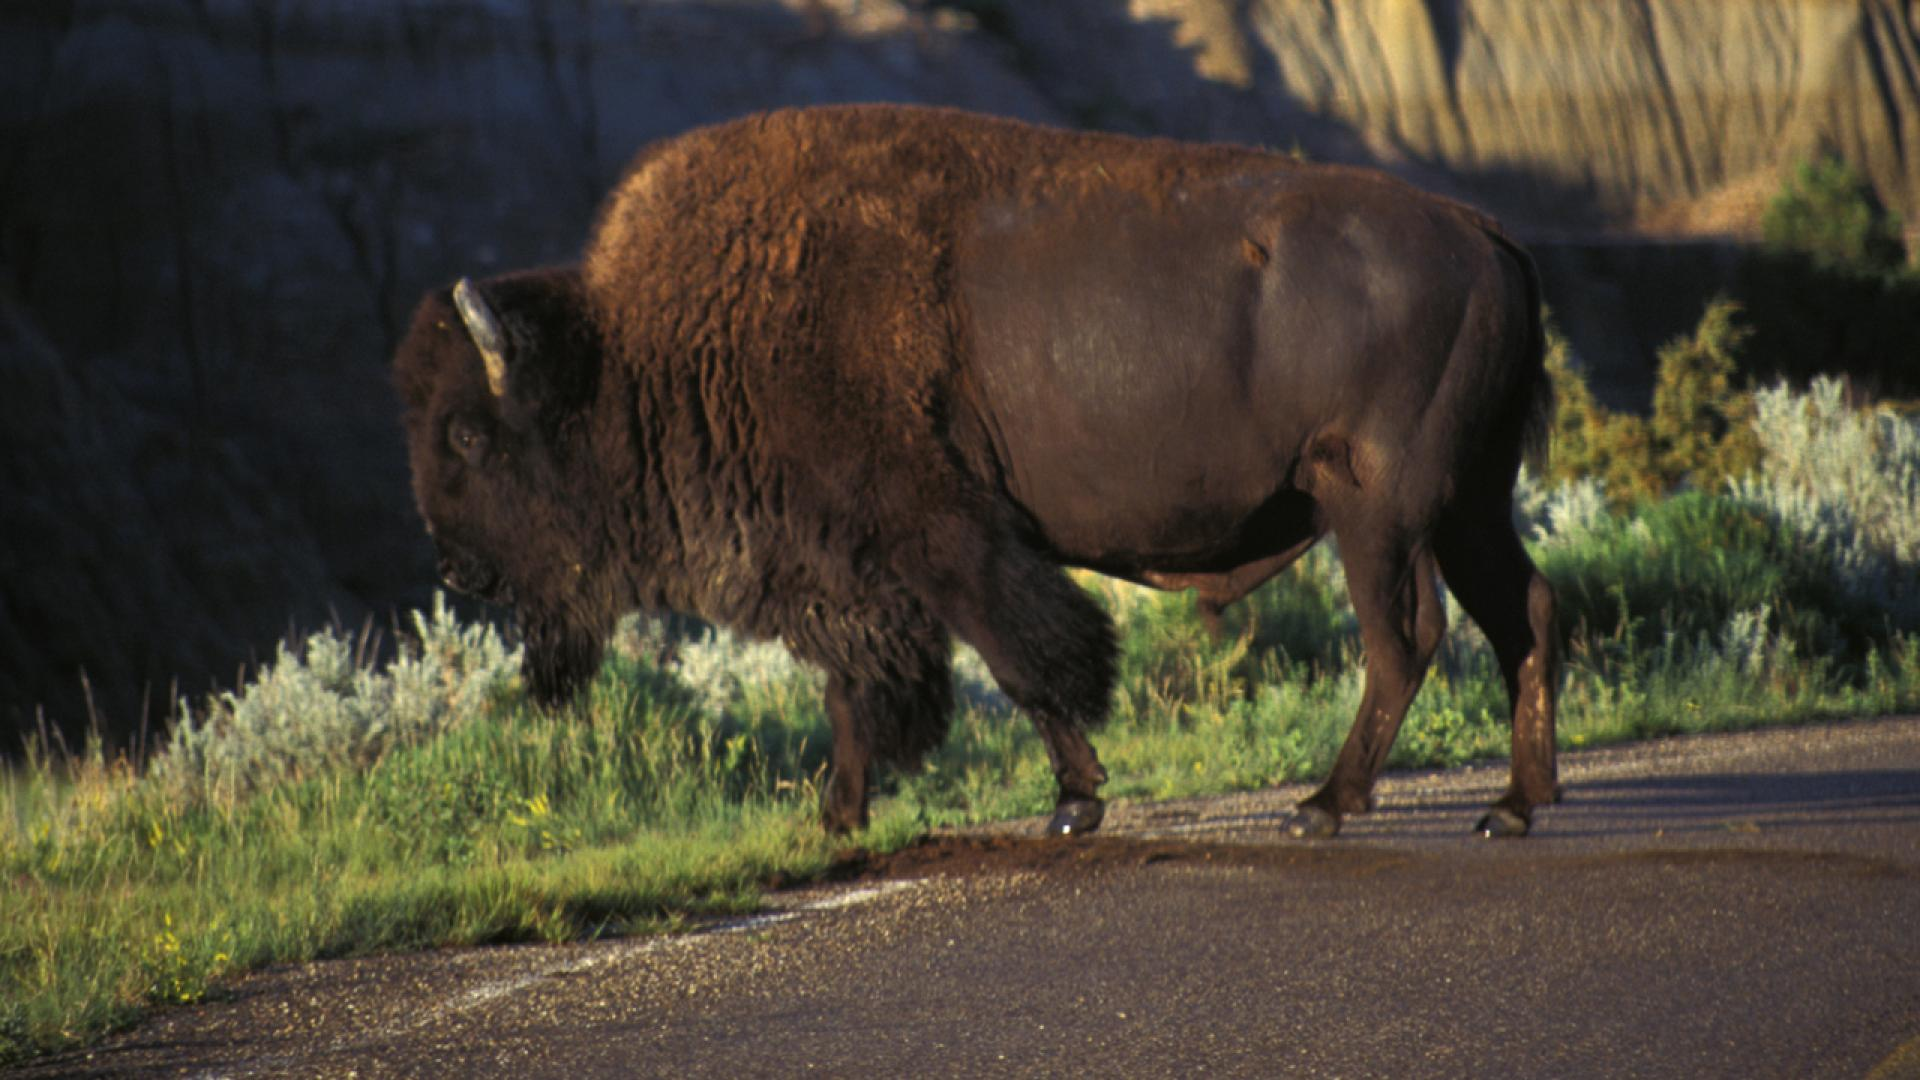 As the teen ran away, the bison struck, goring and tossing the victim inthe air.